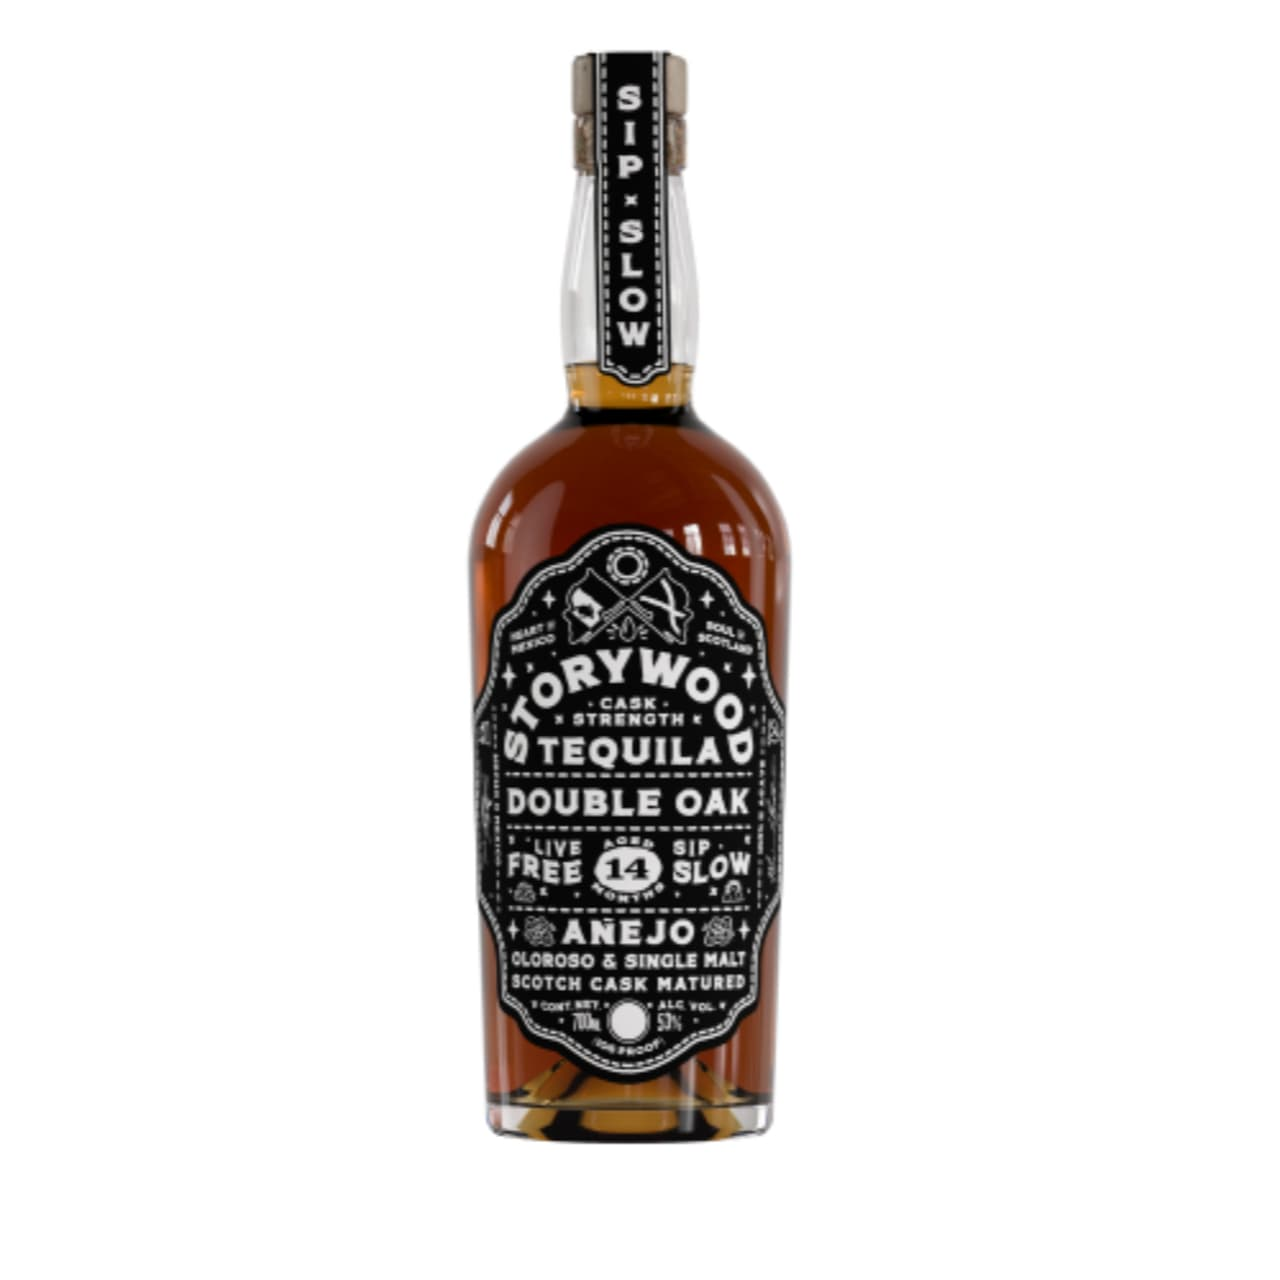 Product Image - Storywood Double Oak Cask Strength Tequila